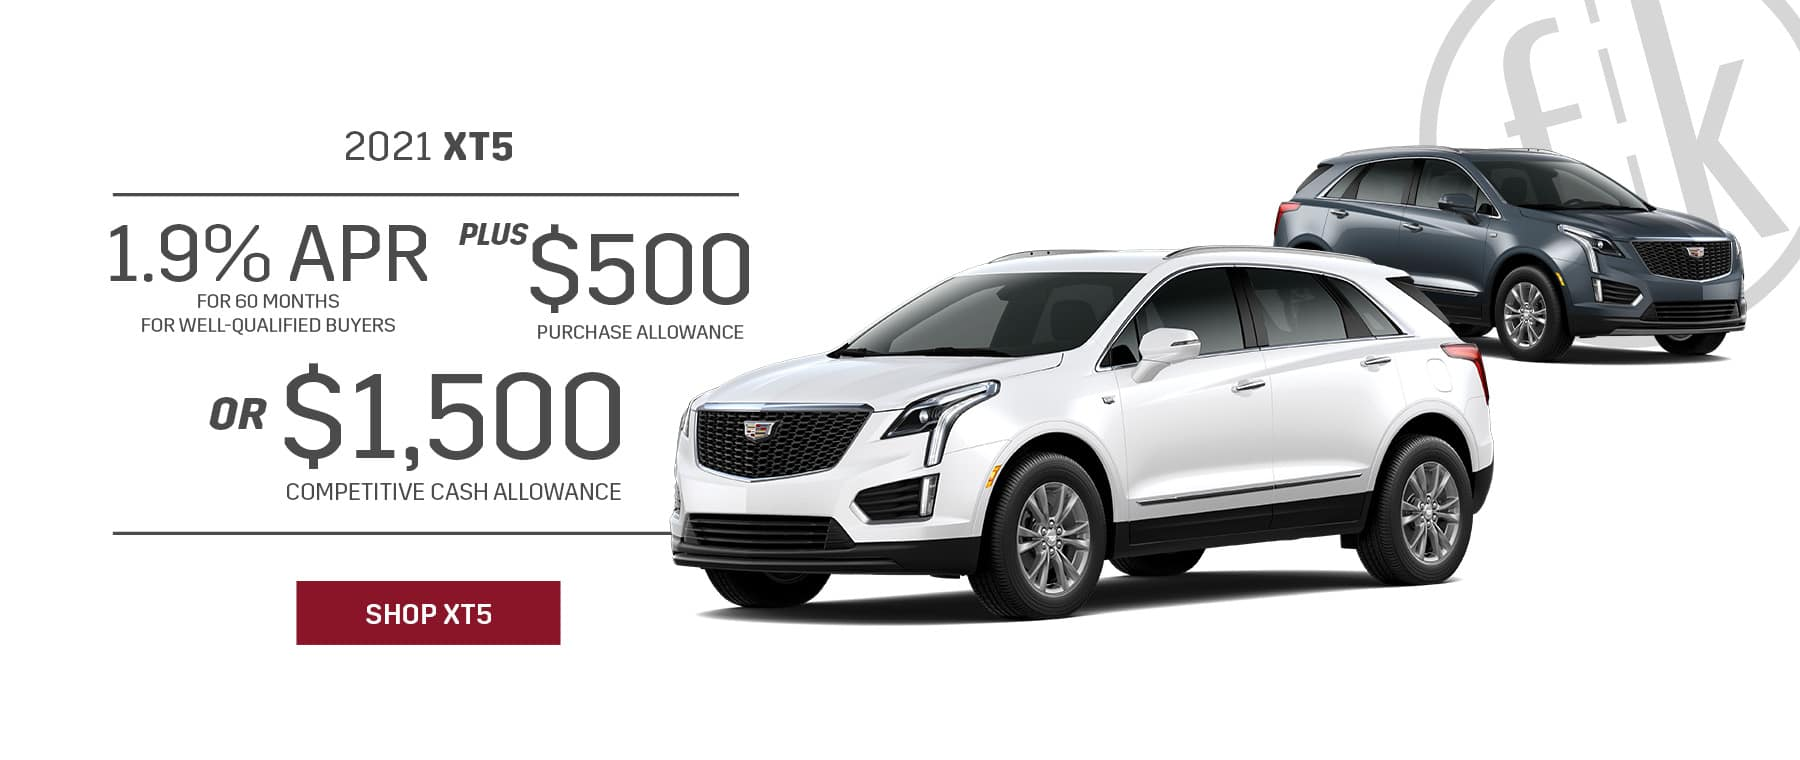 2021 XT5 1.9% for 60 mos PLUS $500 Purchase Allowance OR $1,500 Competitive Cash Allowance